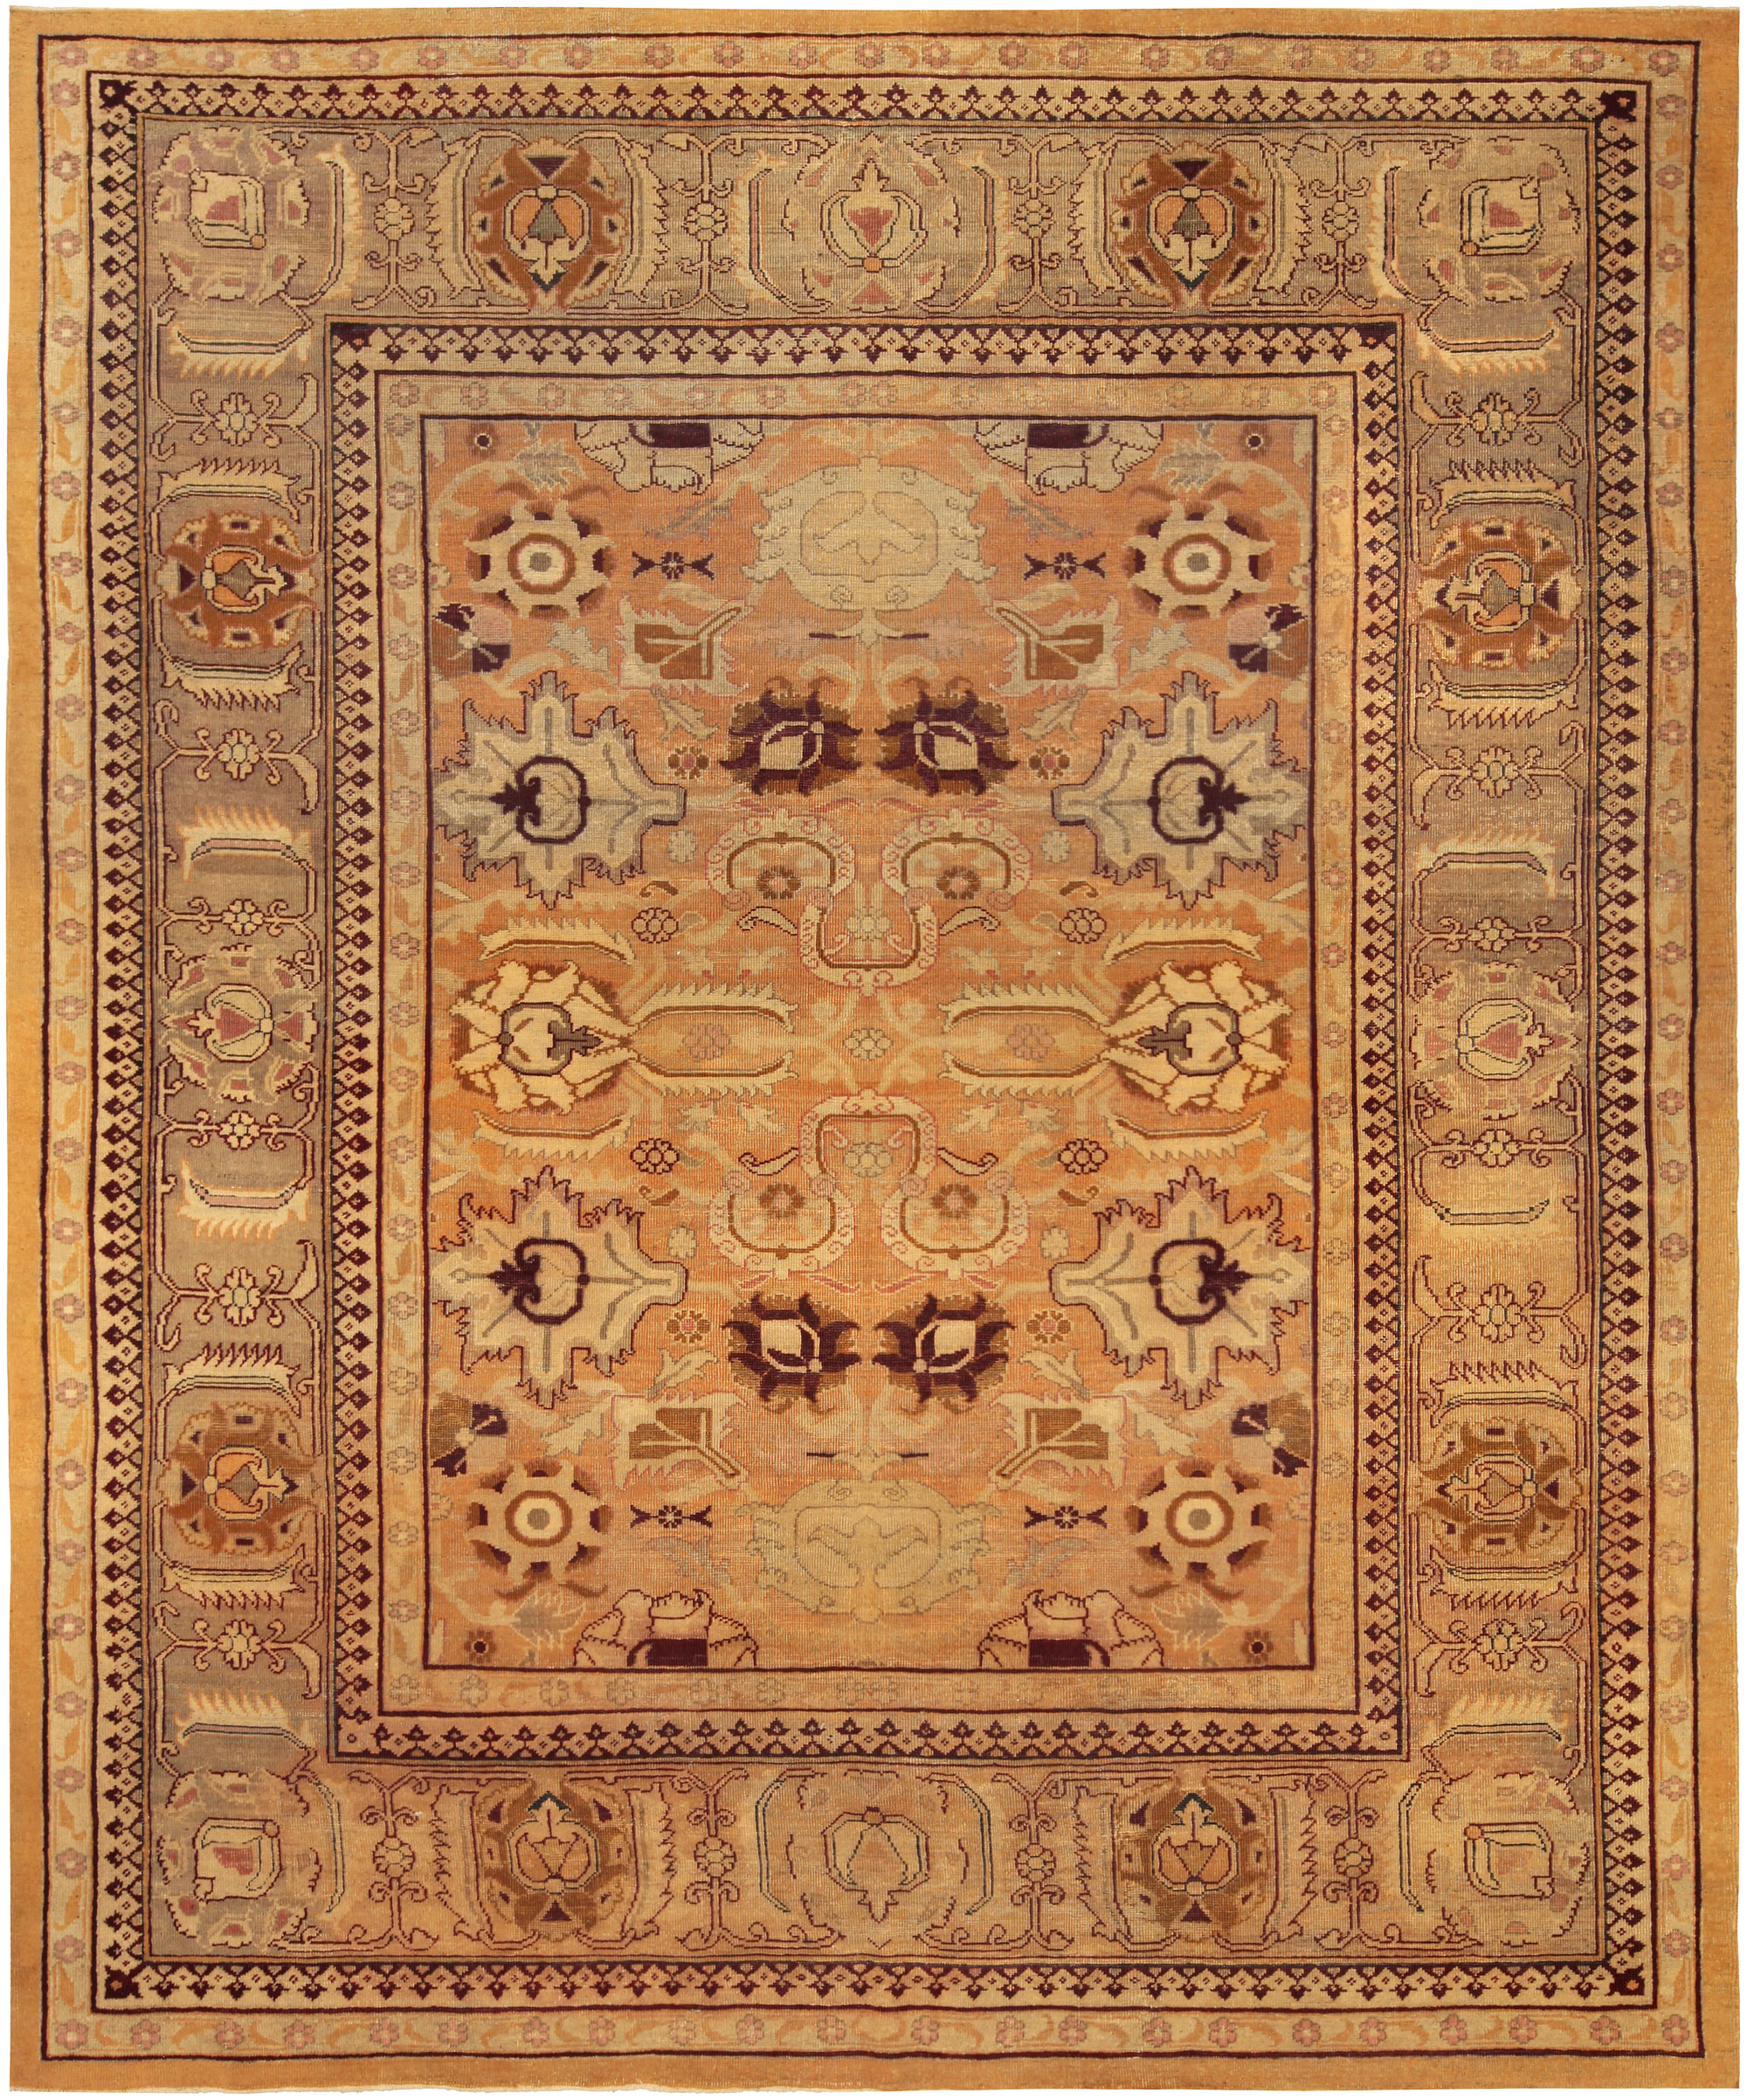 Antique Indian Amritsar Rug Bb5191 By Doris Leslie Blau